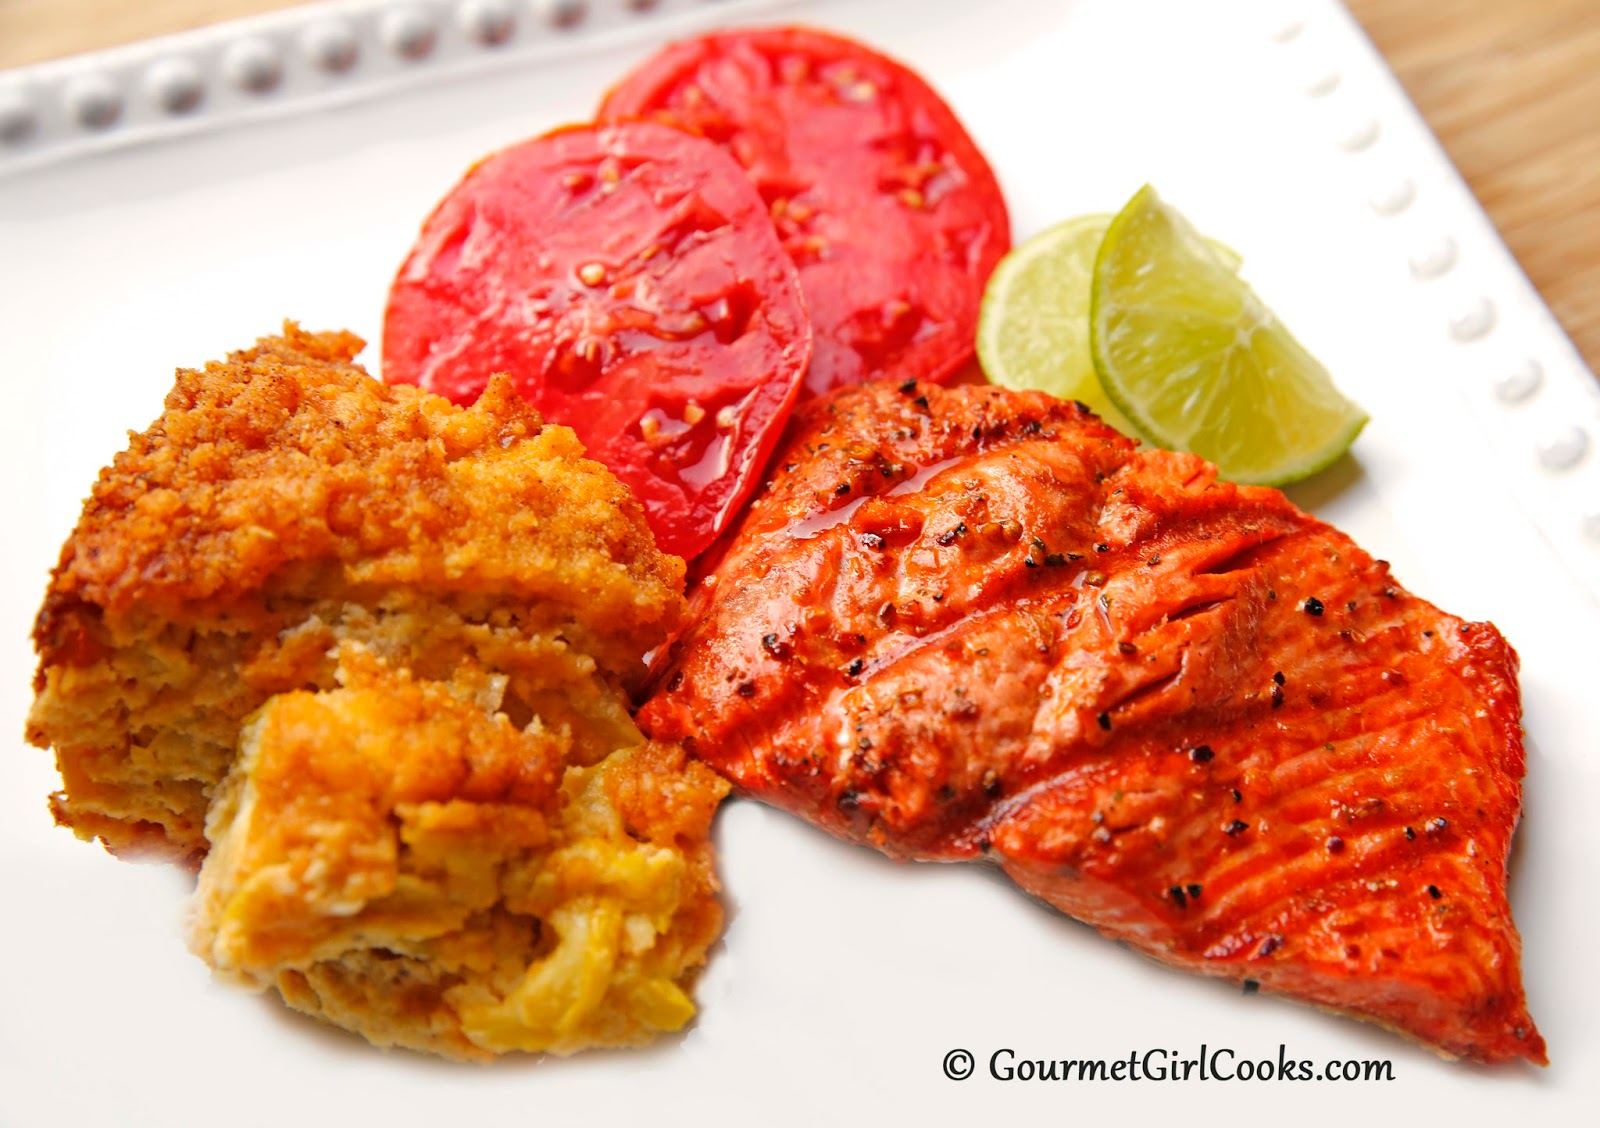 Gourmet Girl Cooks: Grilled Wild Alaskan Salmon w/ Chipotle & Lime ...